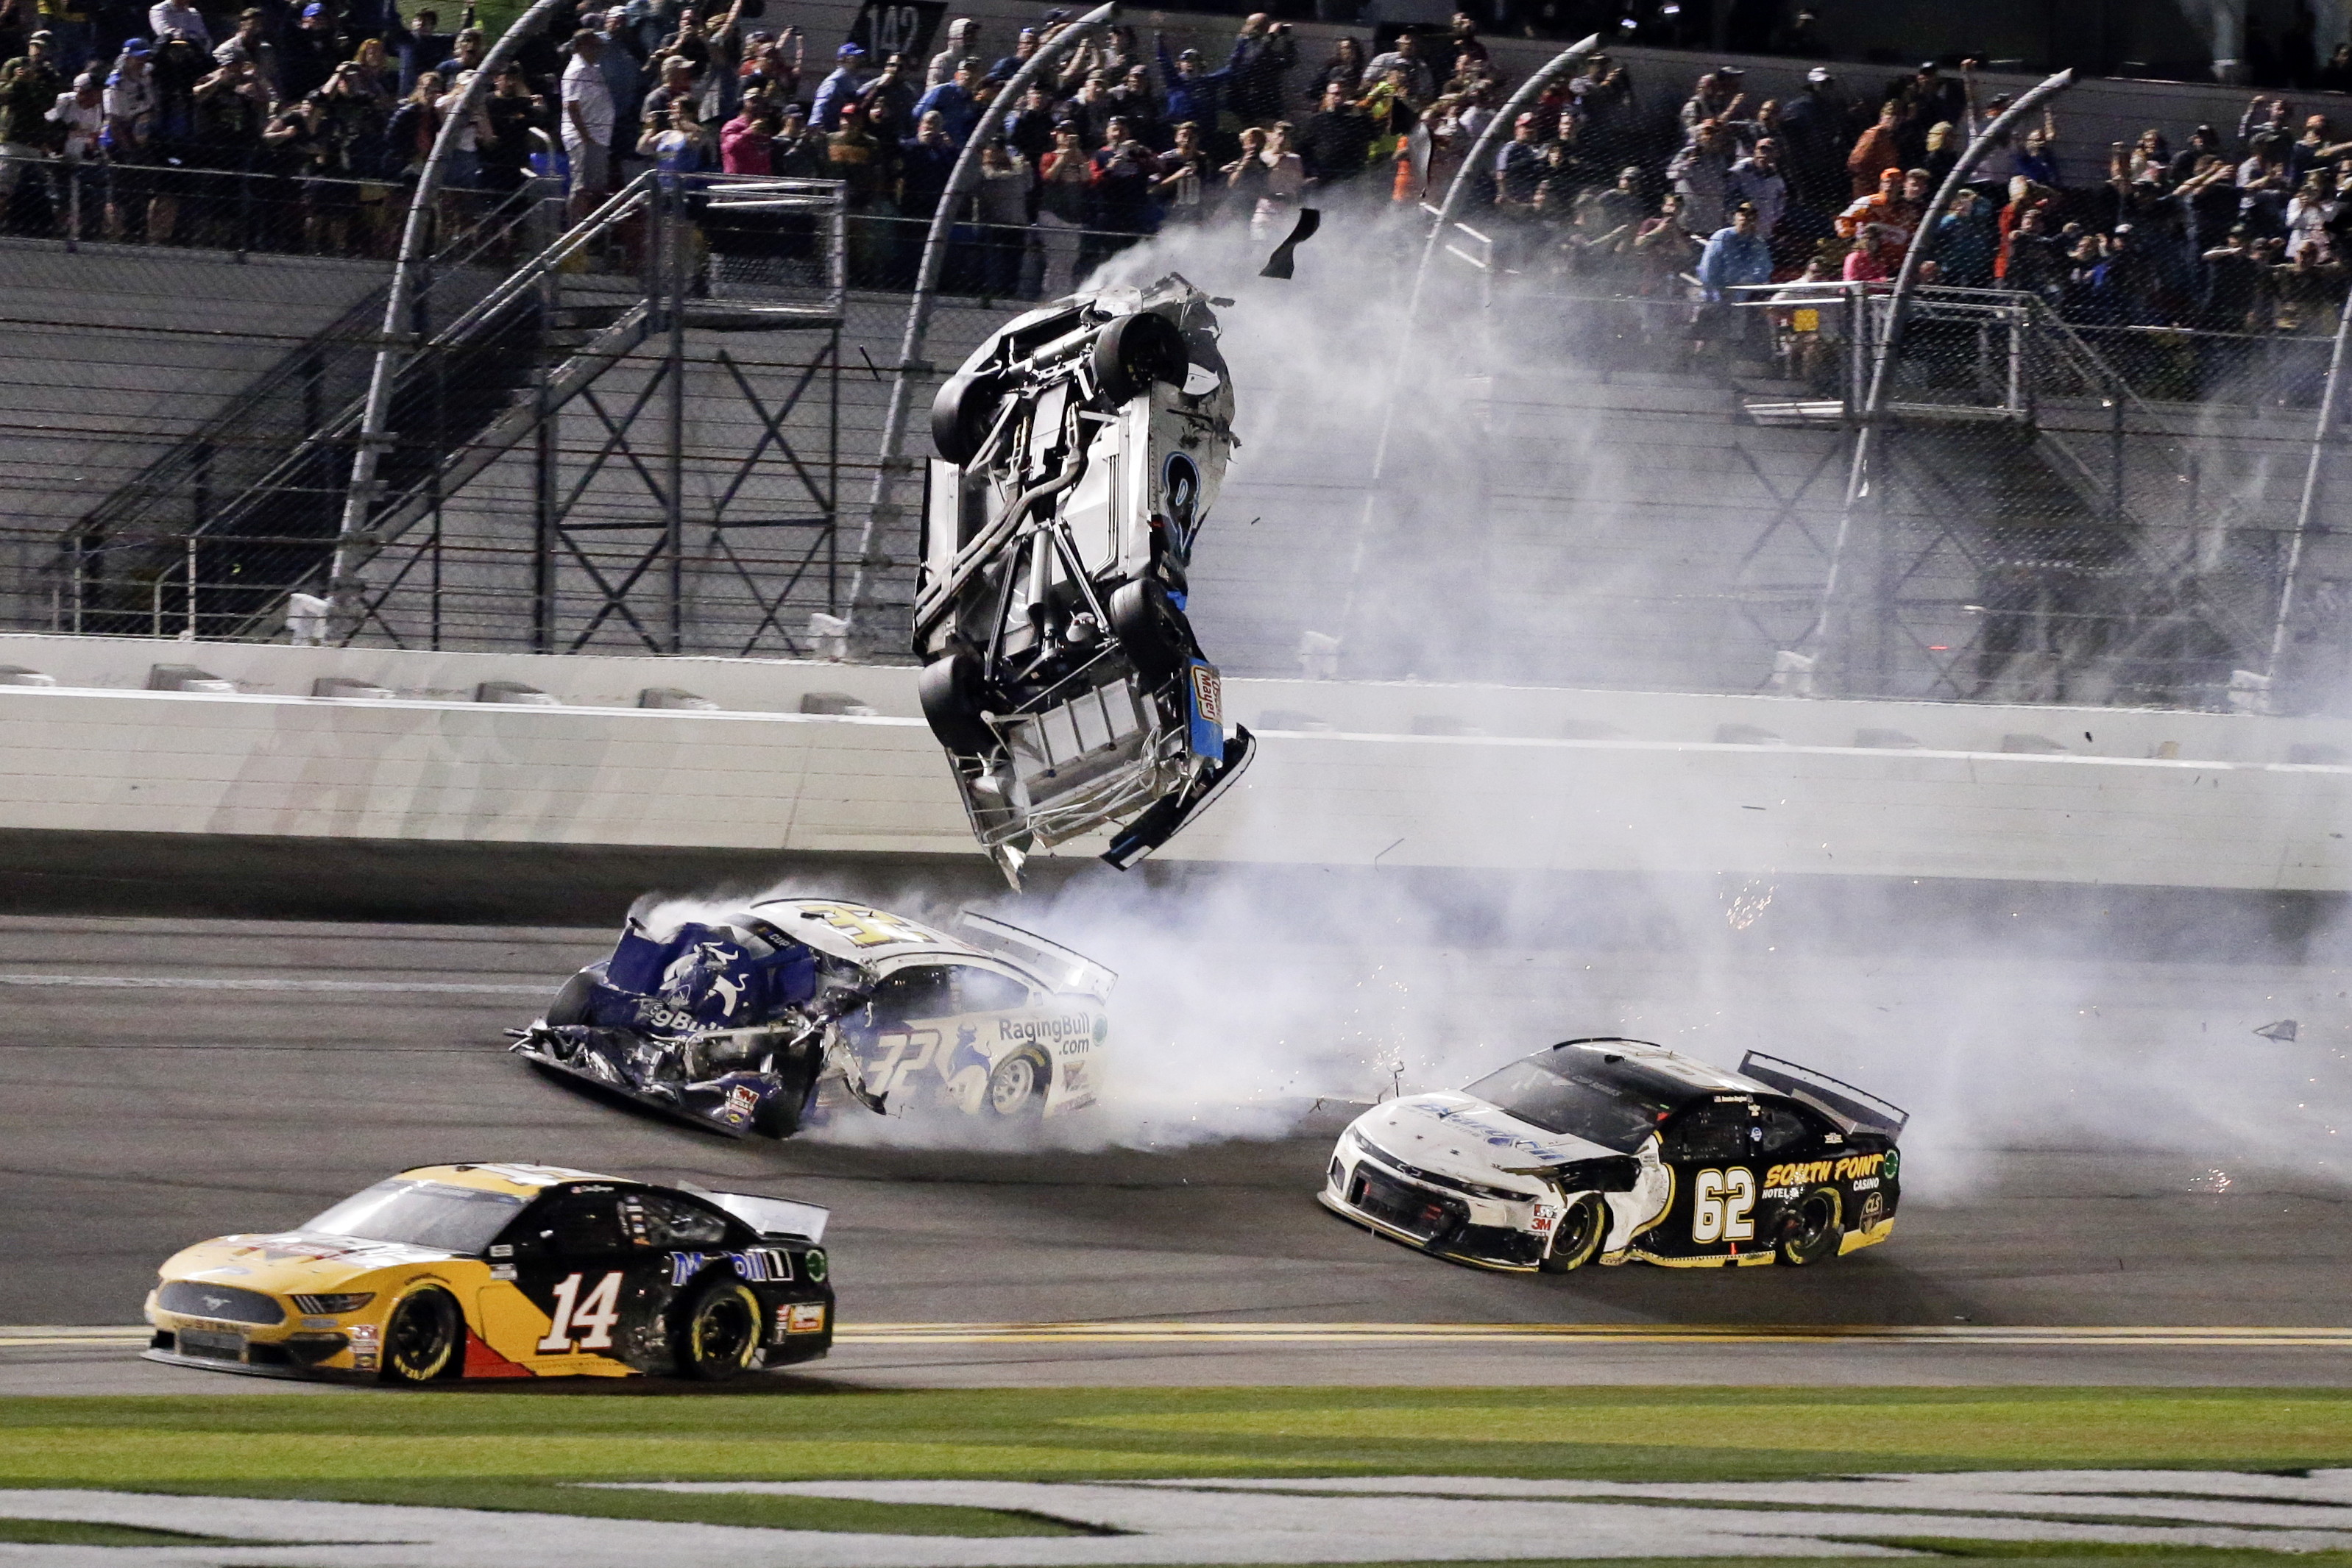 Daytona 500: Ryan Newman's latest terrifying crash sends him to hospital, where he's in serious condition